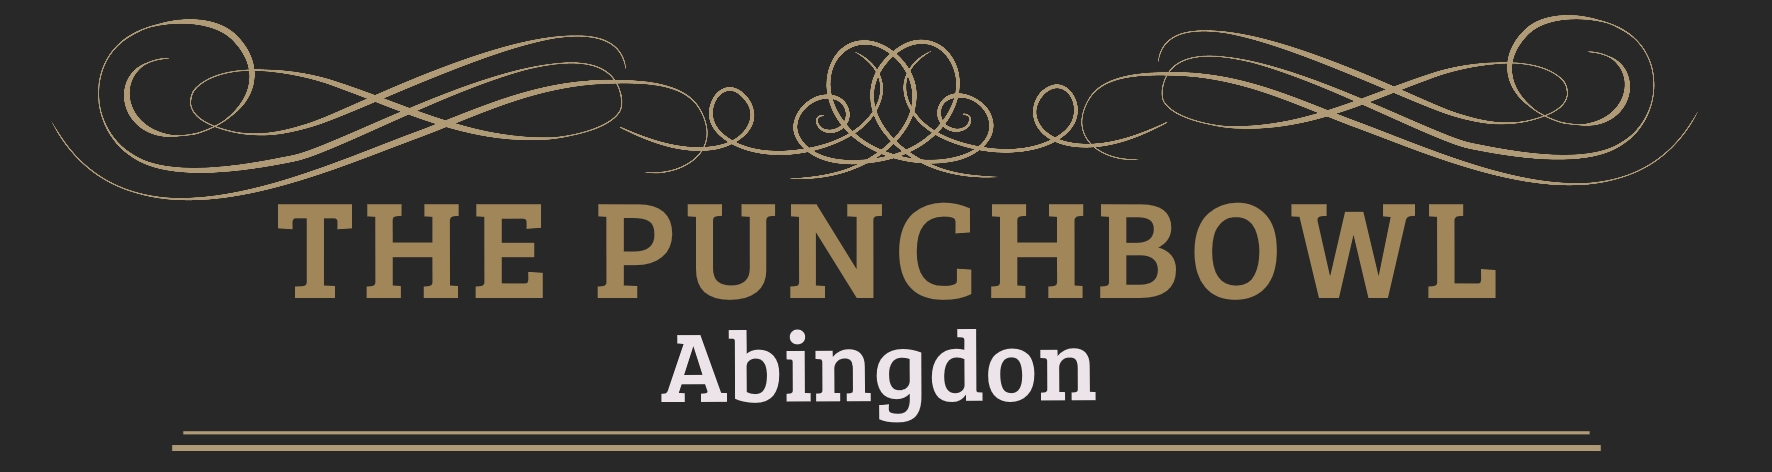 Punch Bowl Abingdon